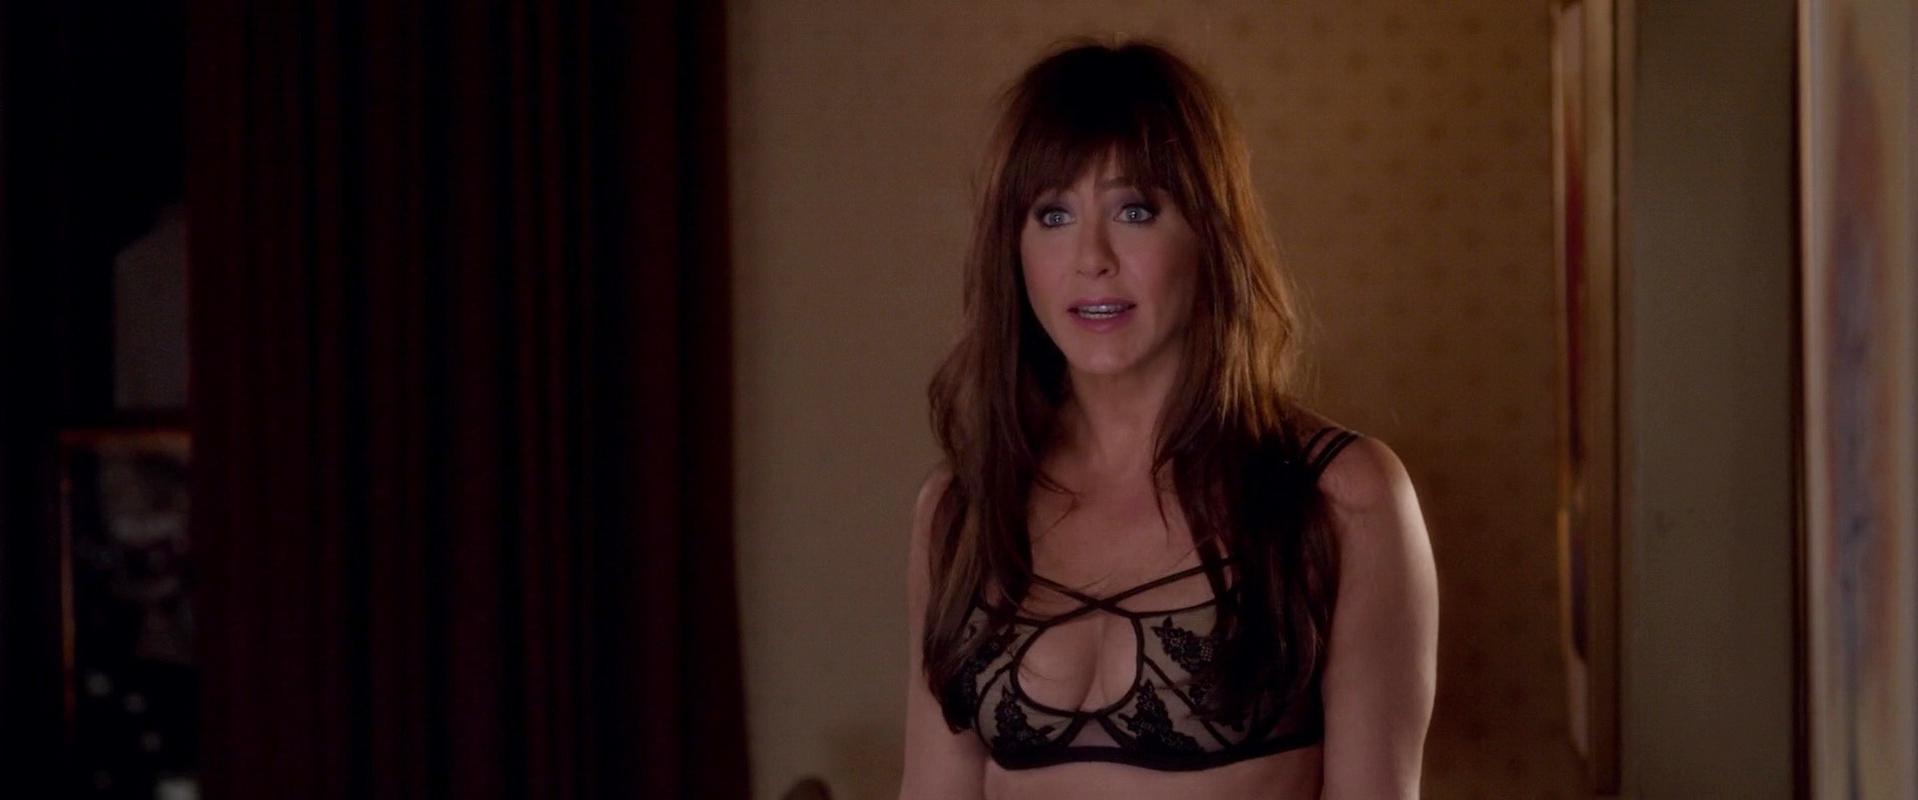 Jennifer Aniston nude - Horrible Bosses 2 (2014)